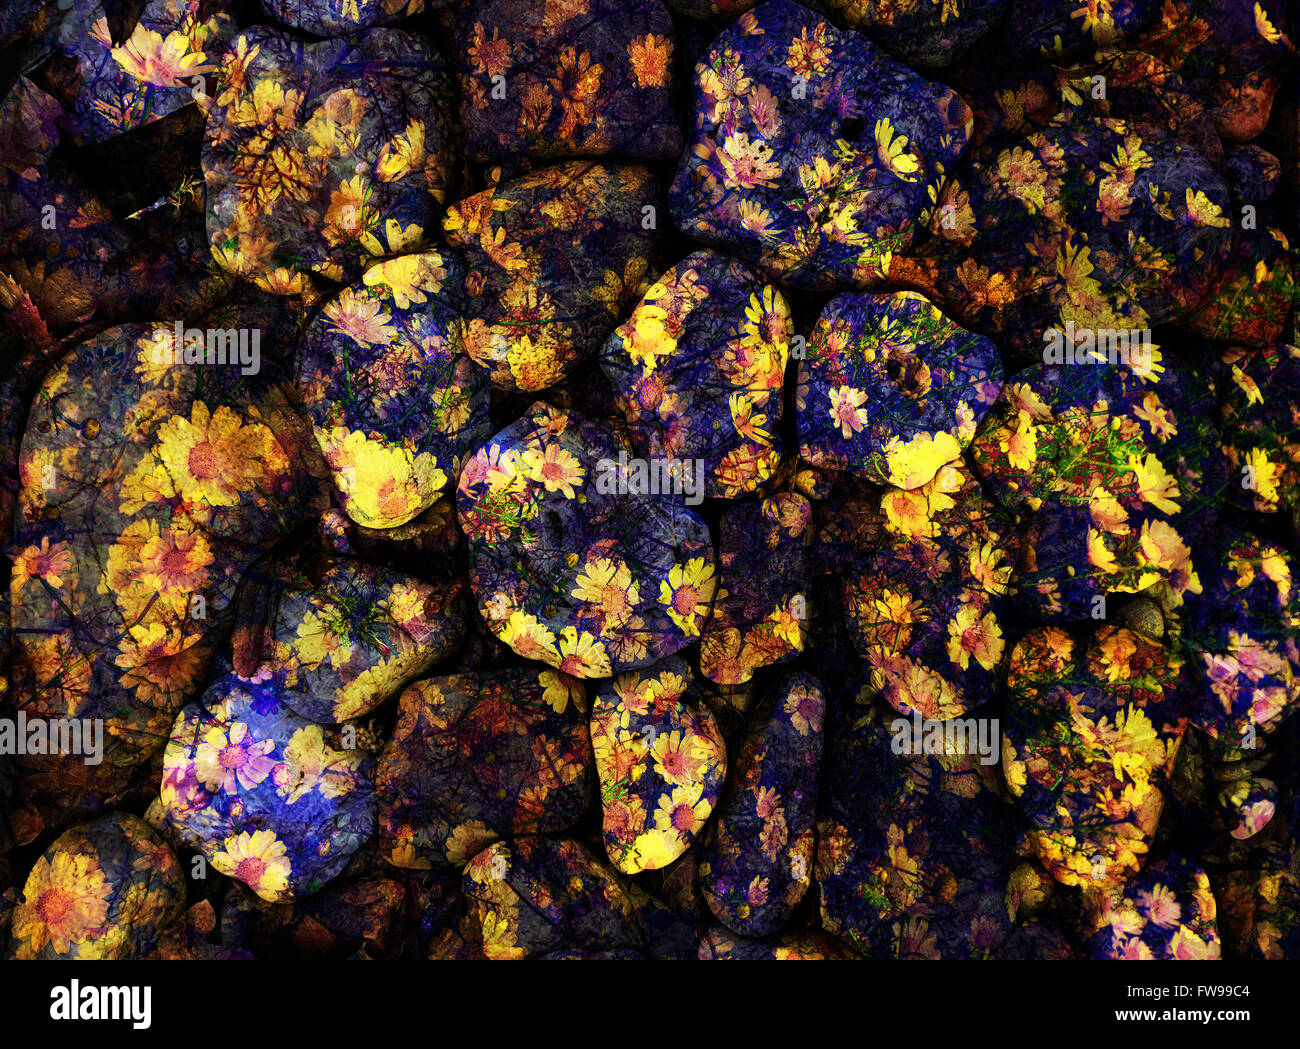 Modern abstract graphic design digital art concept creative - Stock Image